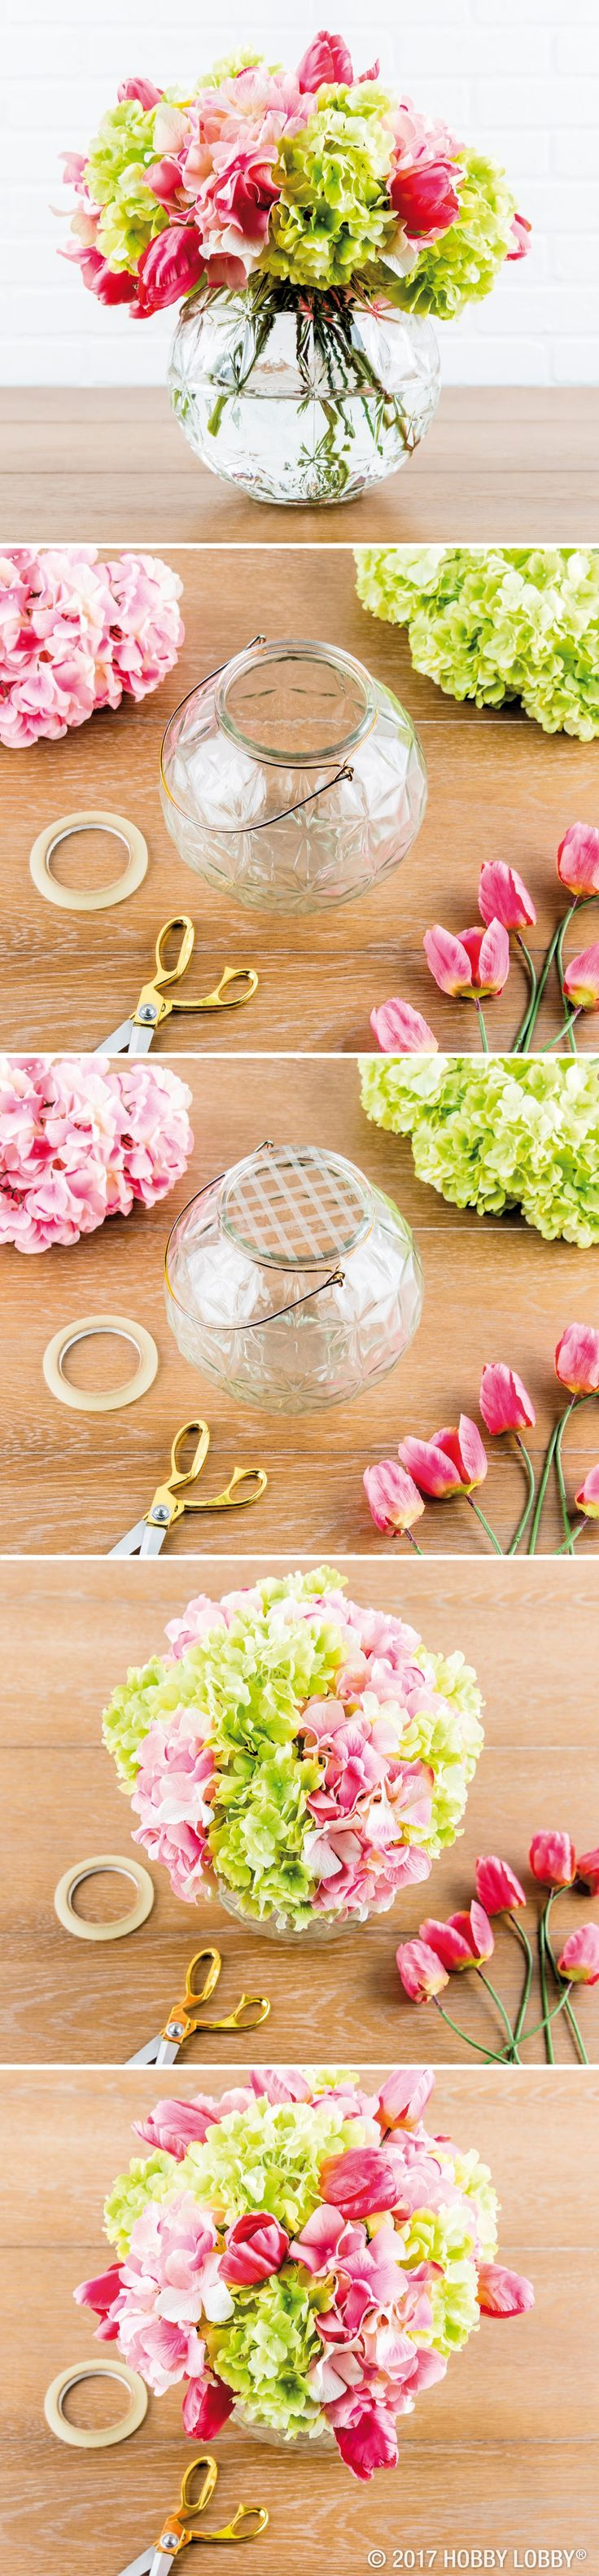 Bring life to your space with a DIY faux floral arrangement! First, trim stems as needed. Next, tape grid lines over the vase's opening—this will keep the stems in place. Starting with the largest blooms, arrange flowers in vase. Fill in any bare spots with smaller stems!